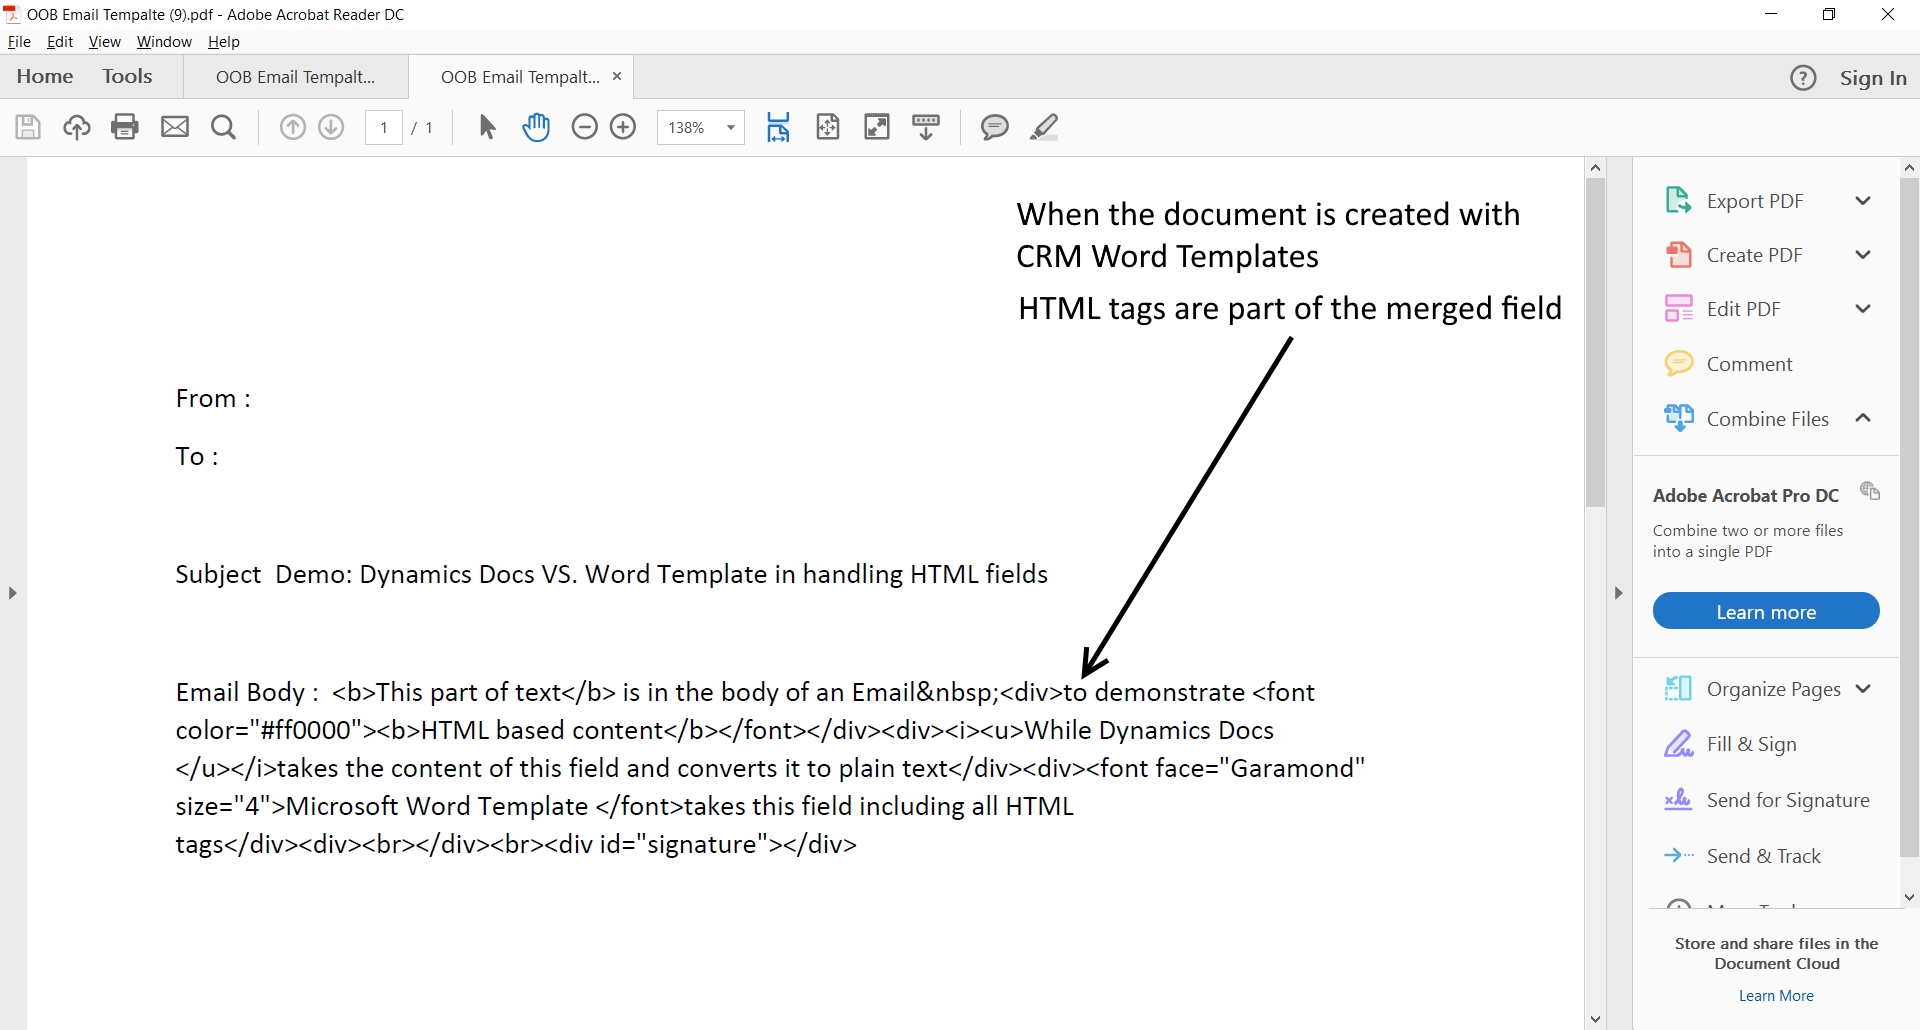 Z2 1 Dynamics CRM Word Templates, issue with HTML fields